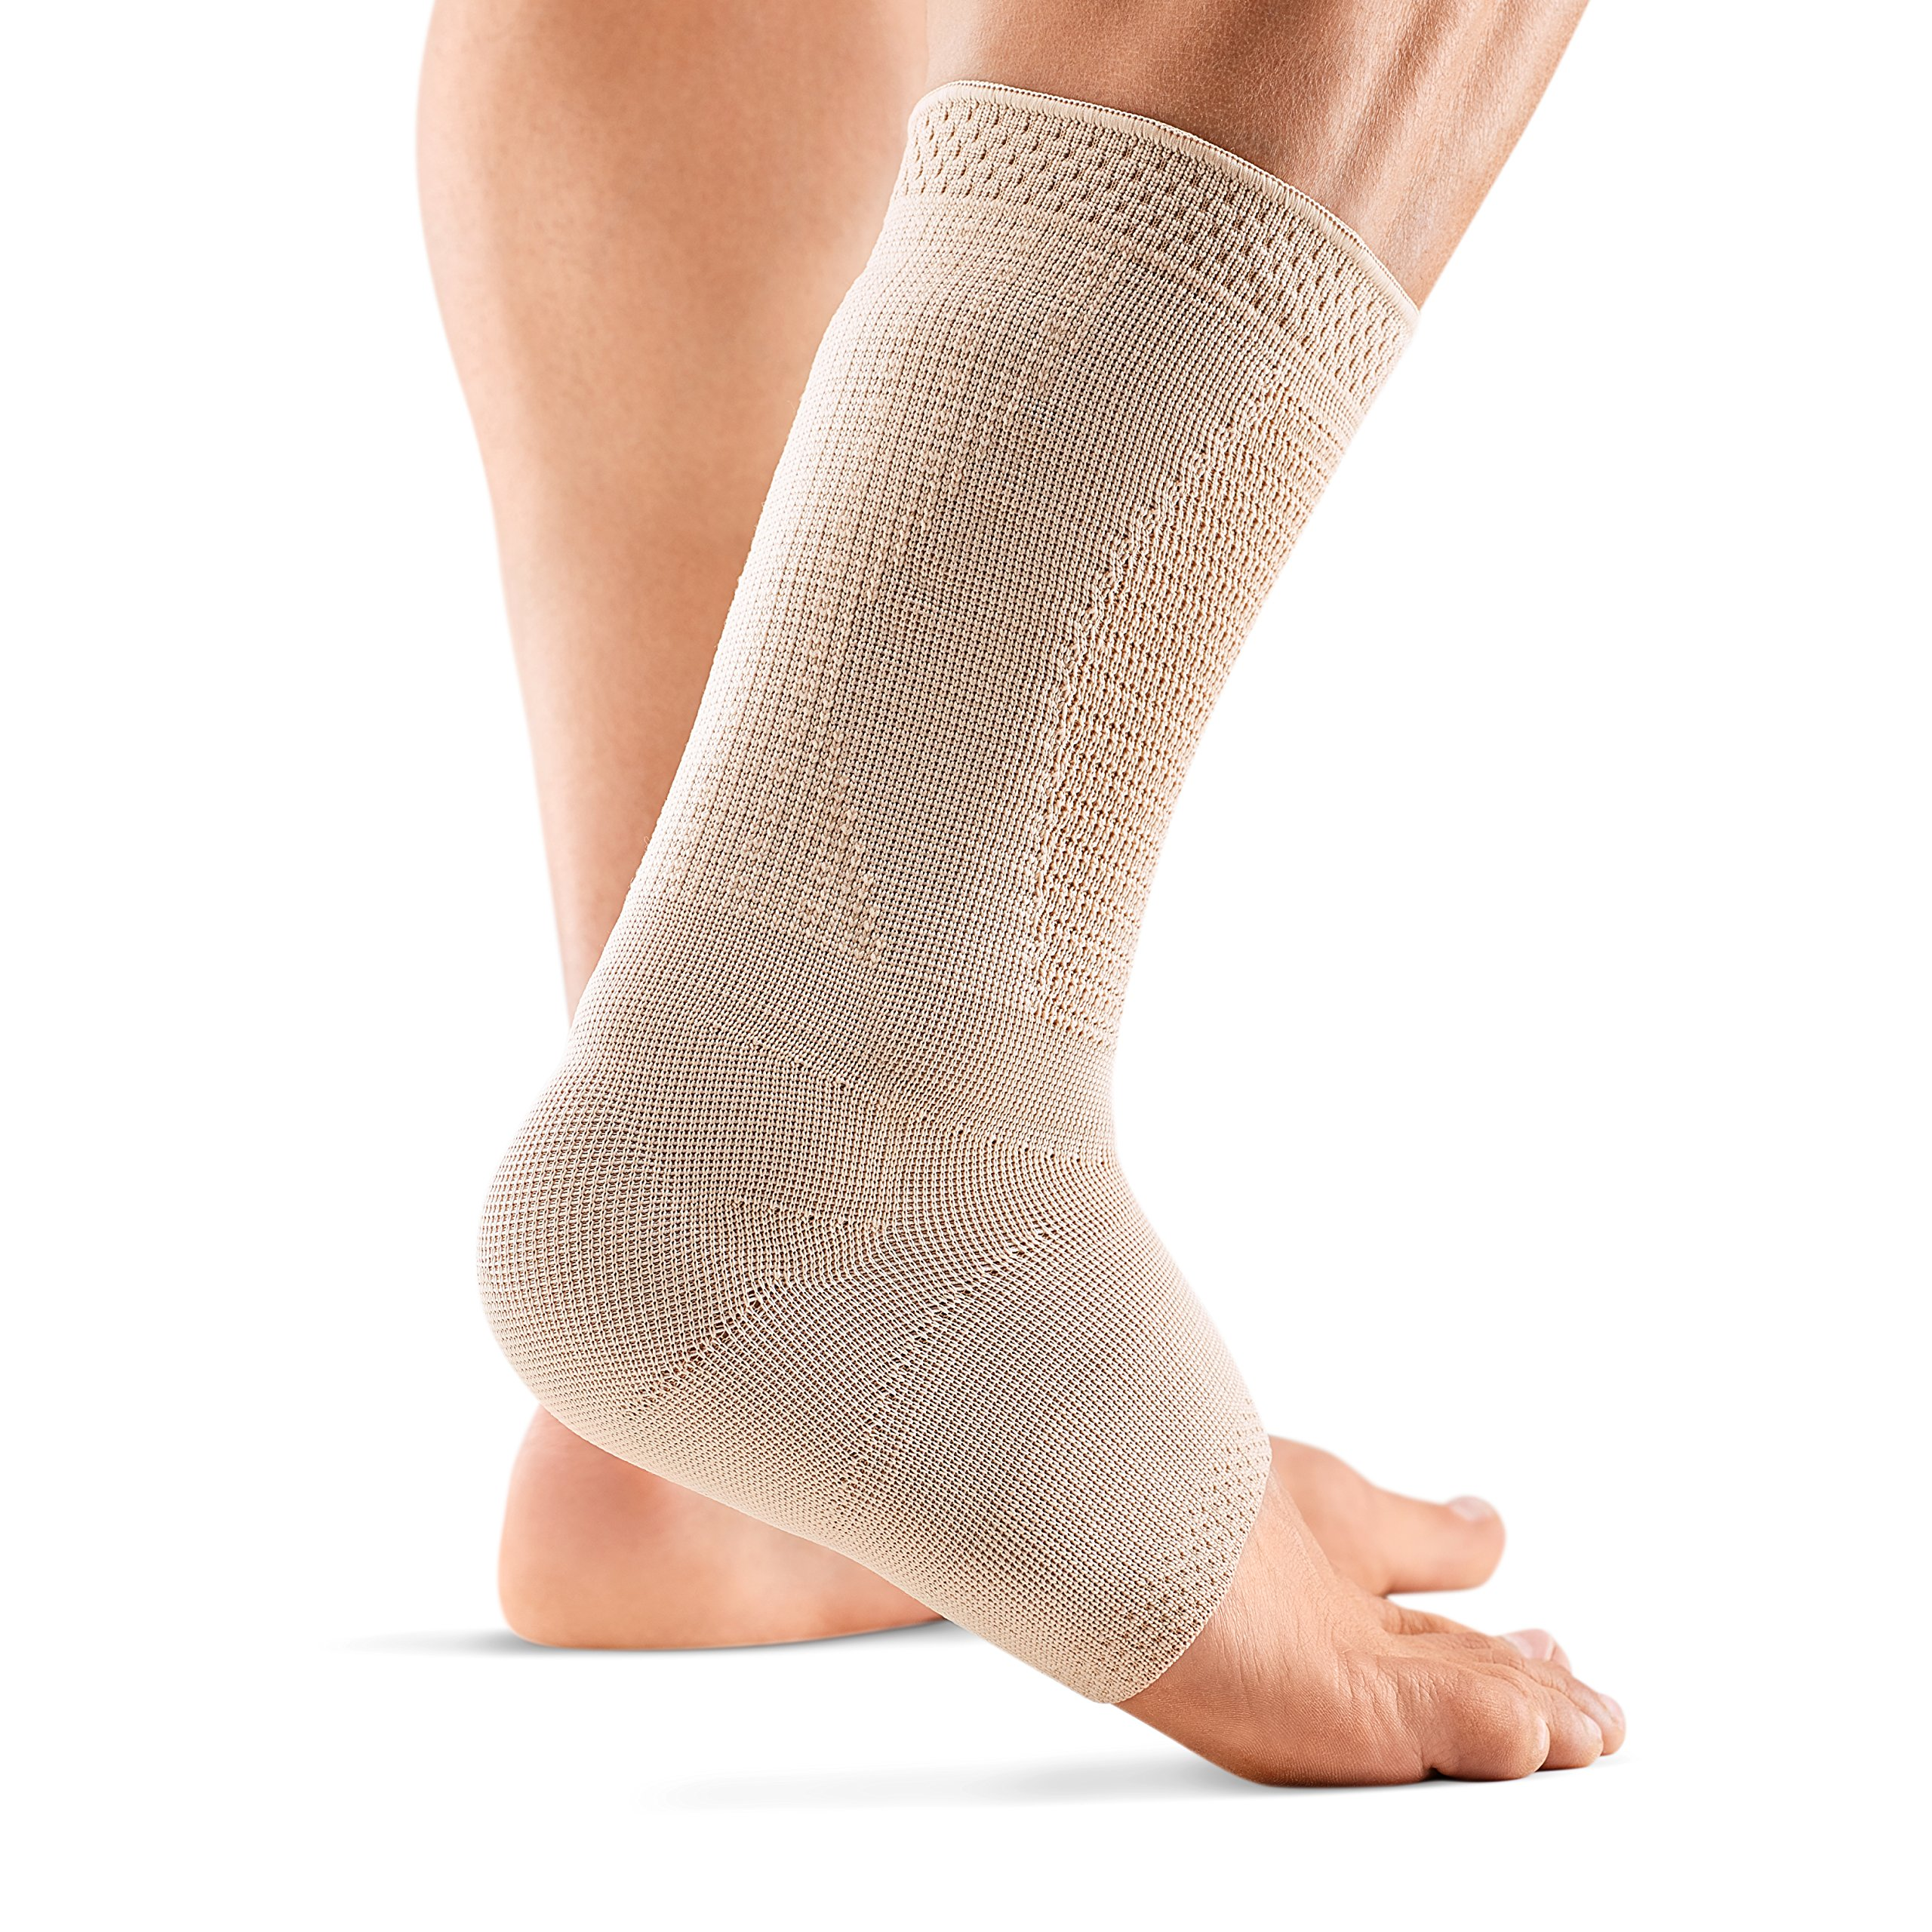 Bauerfeind AchilloTrain Pro Achilles Tendon Support (Nature, 2)